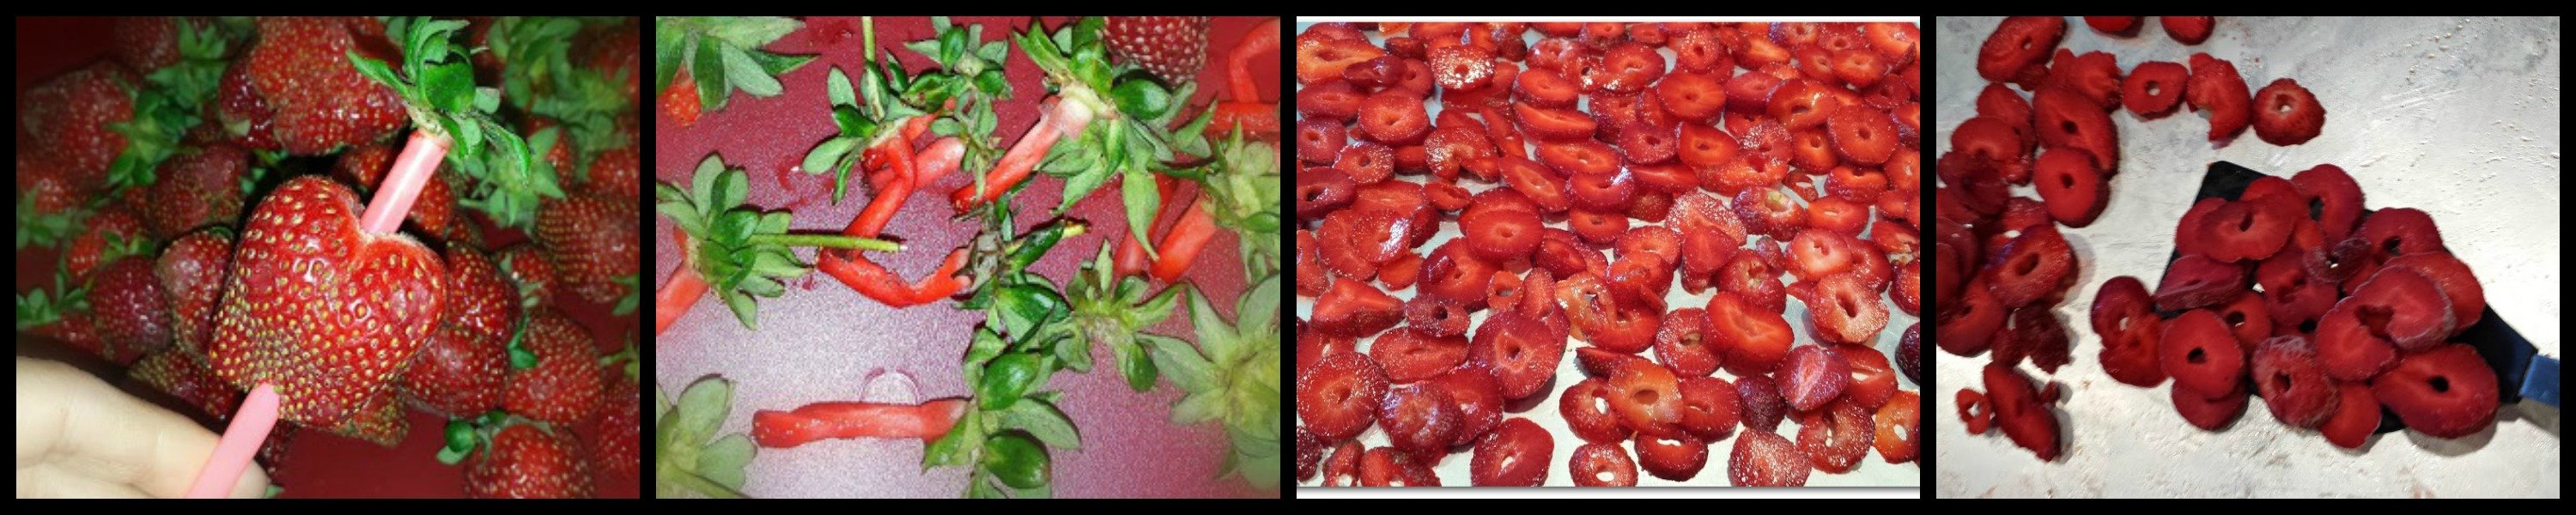 it's strawberry season y'all-collage